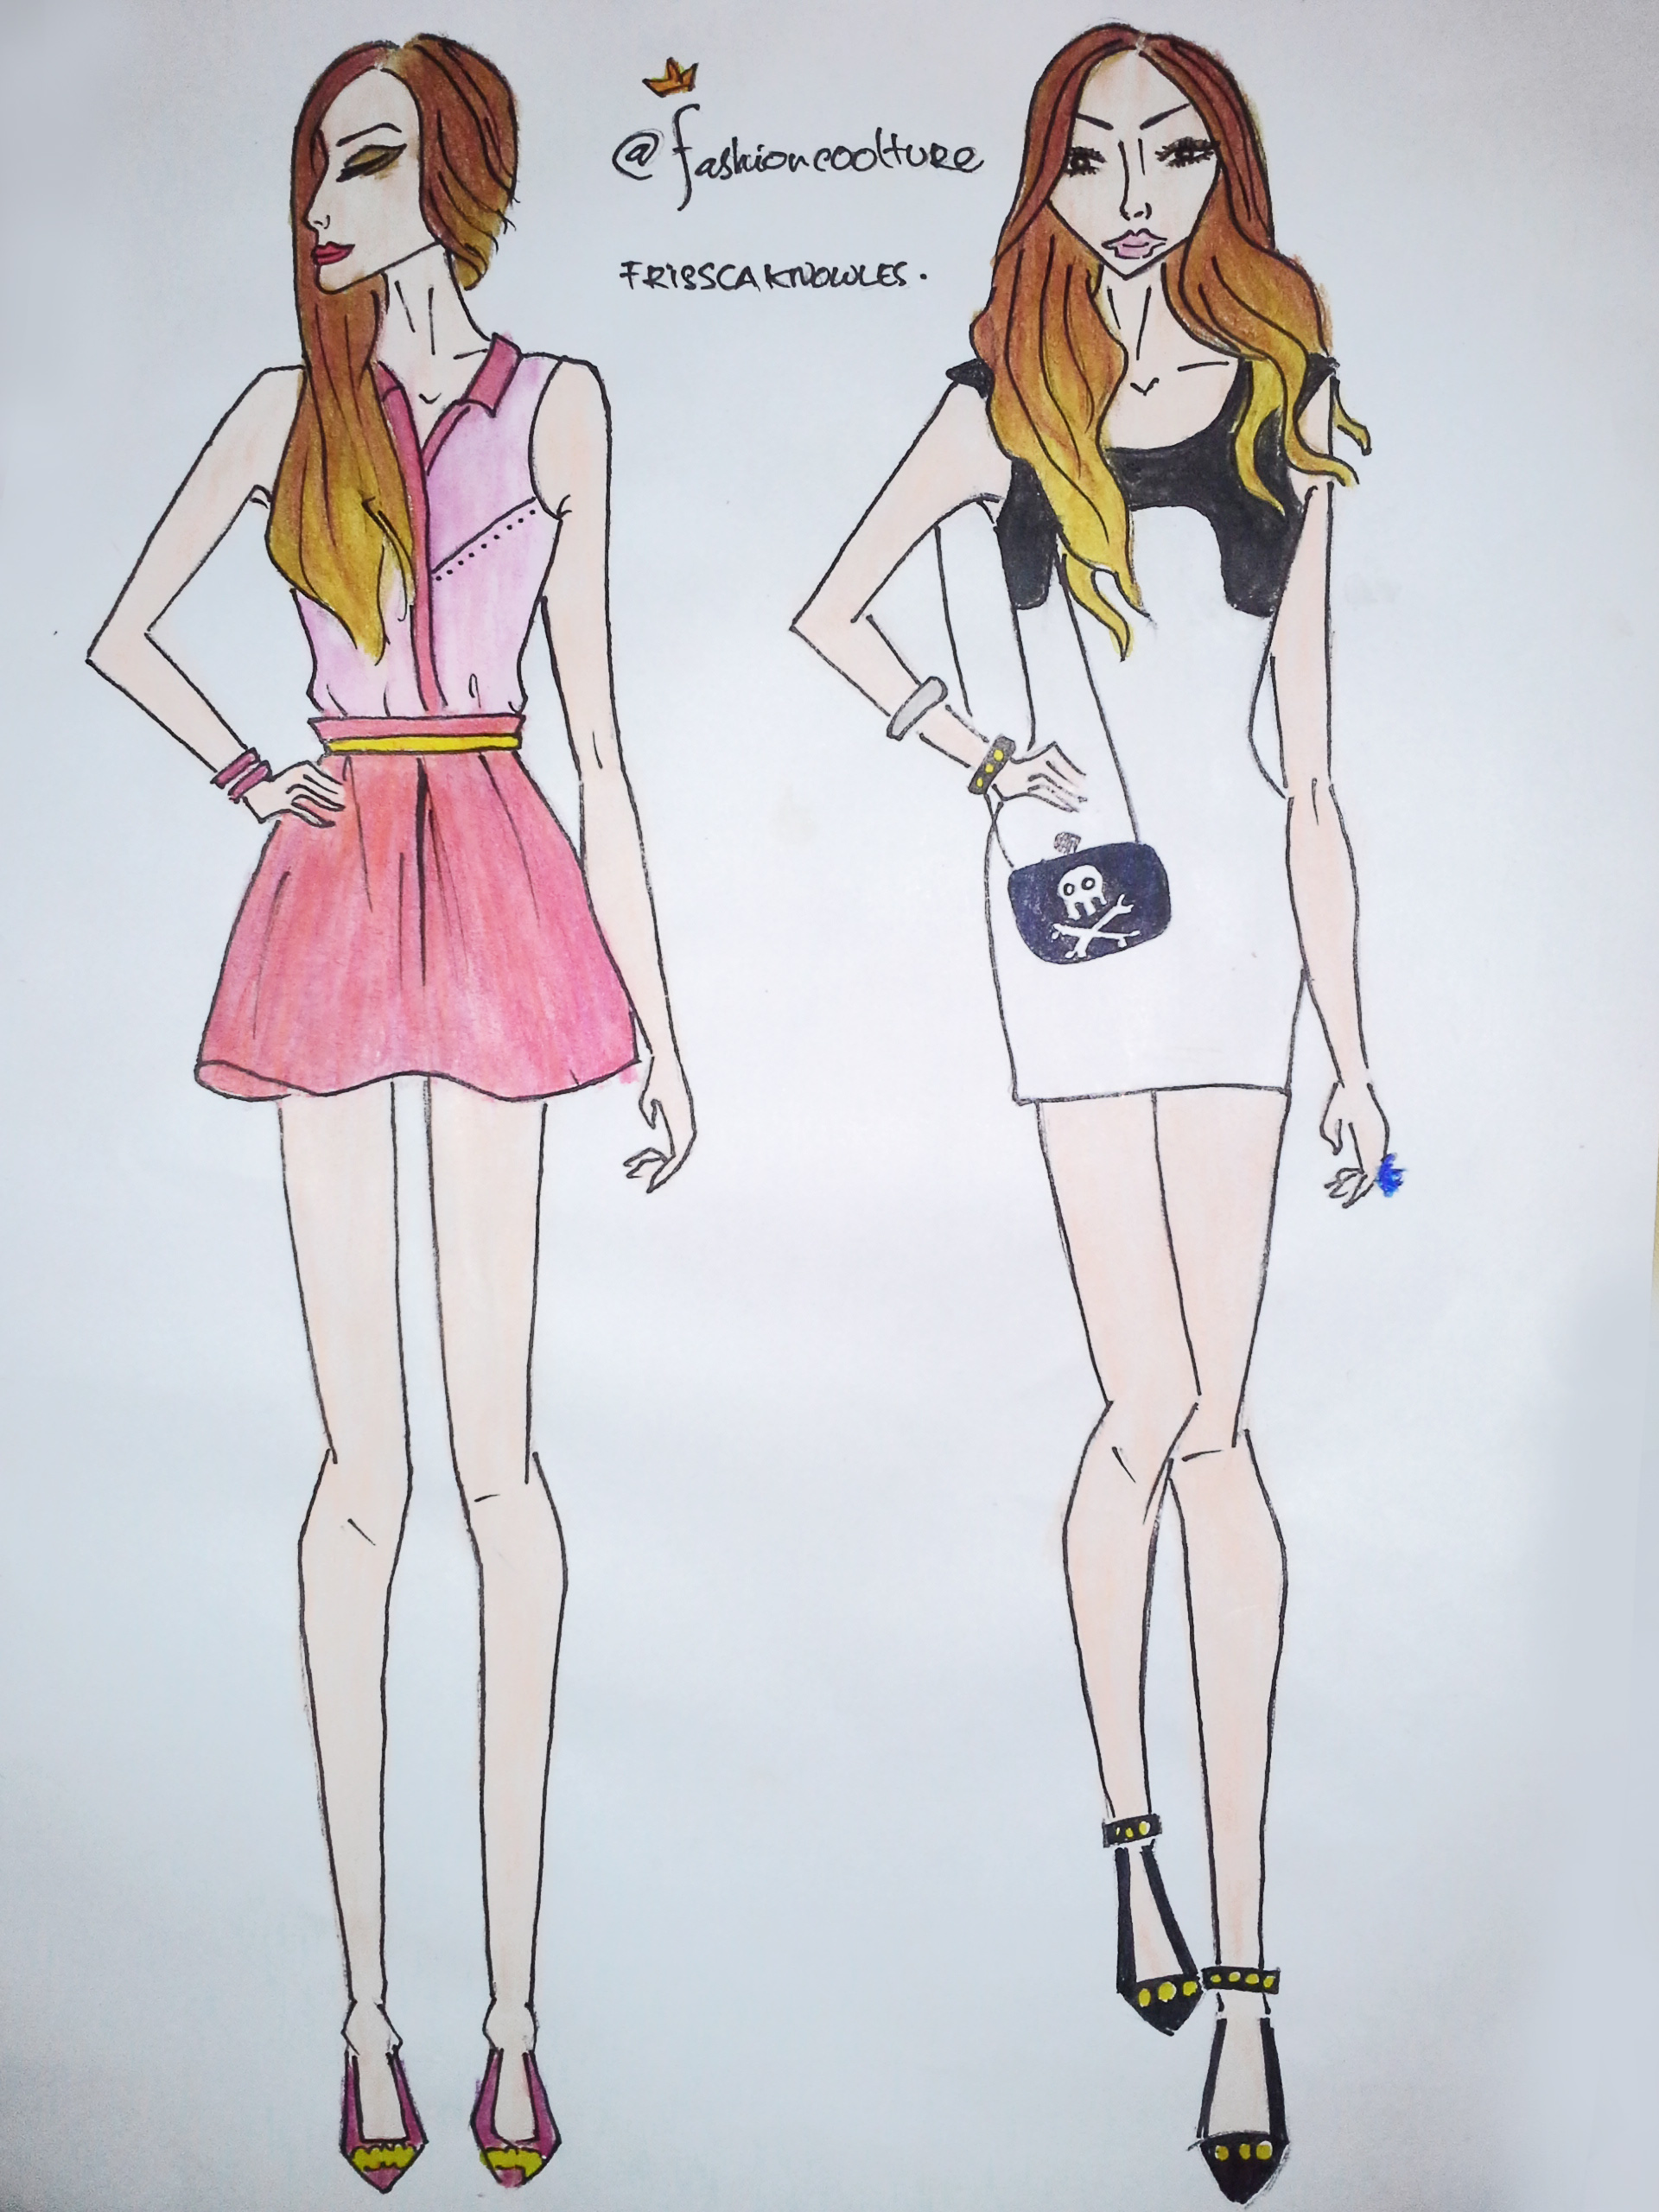 FashionCoolture - drawings (1)